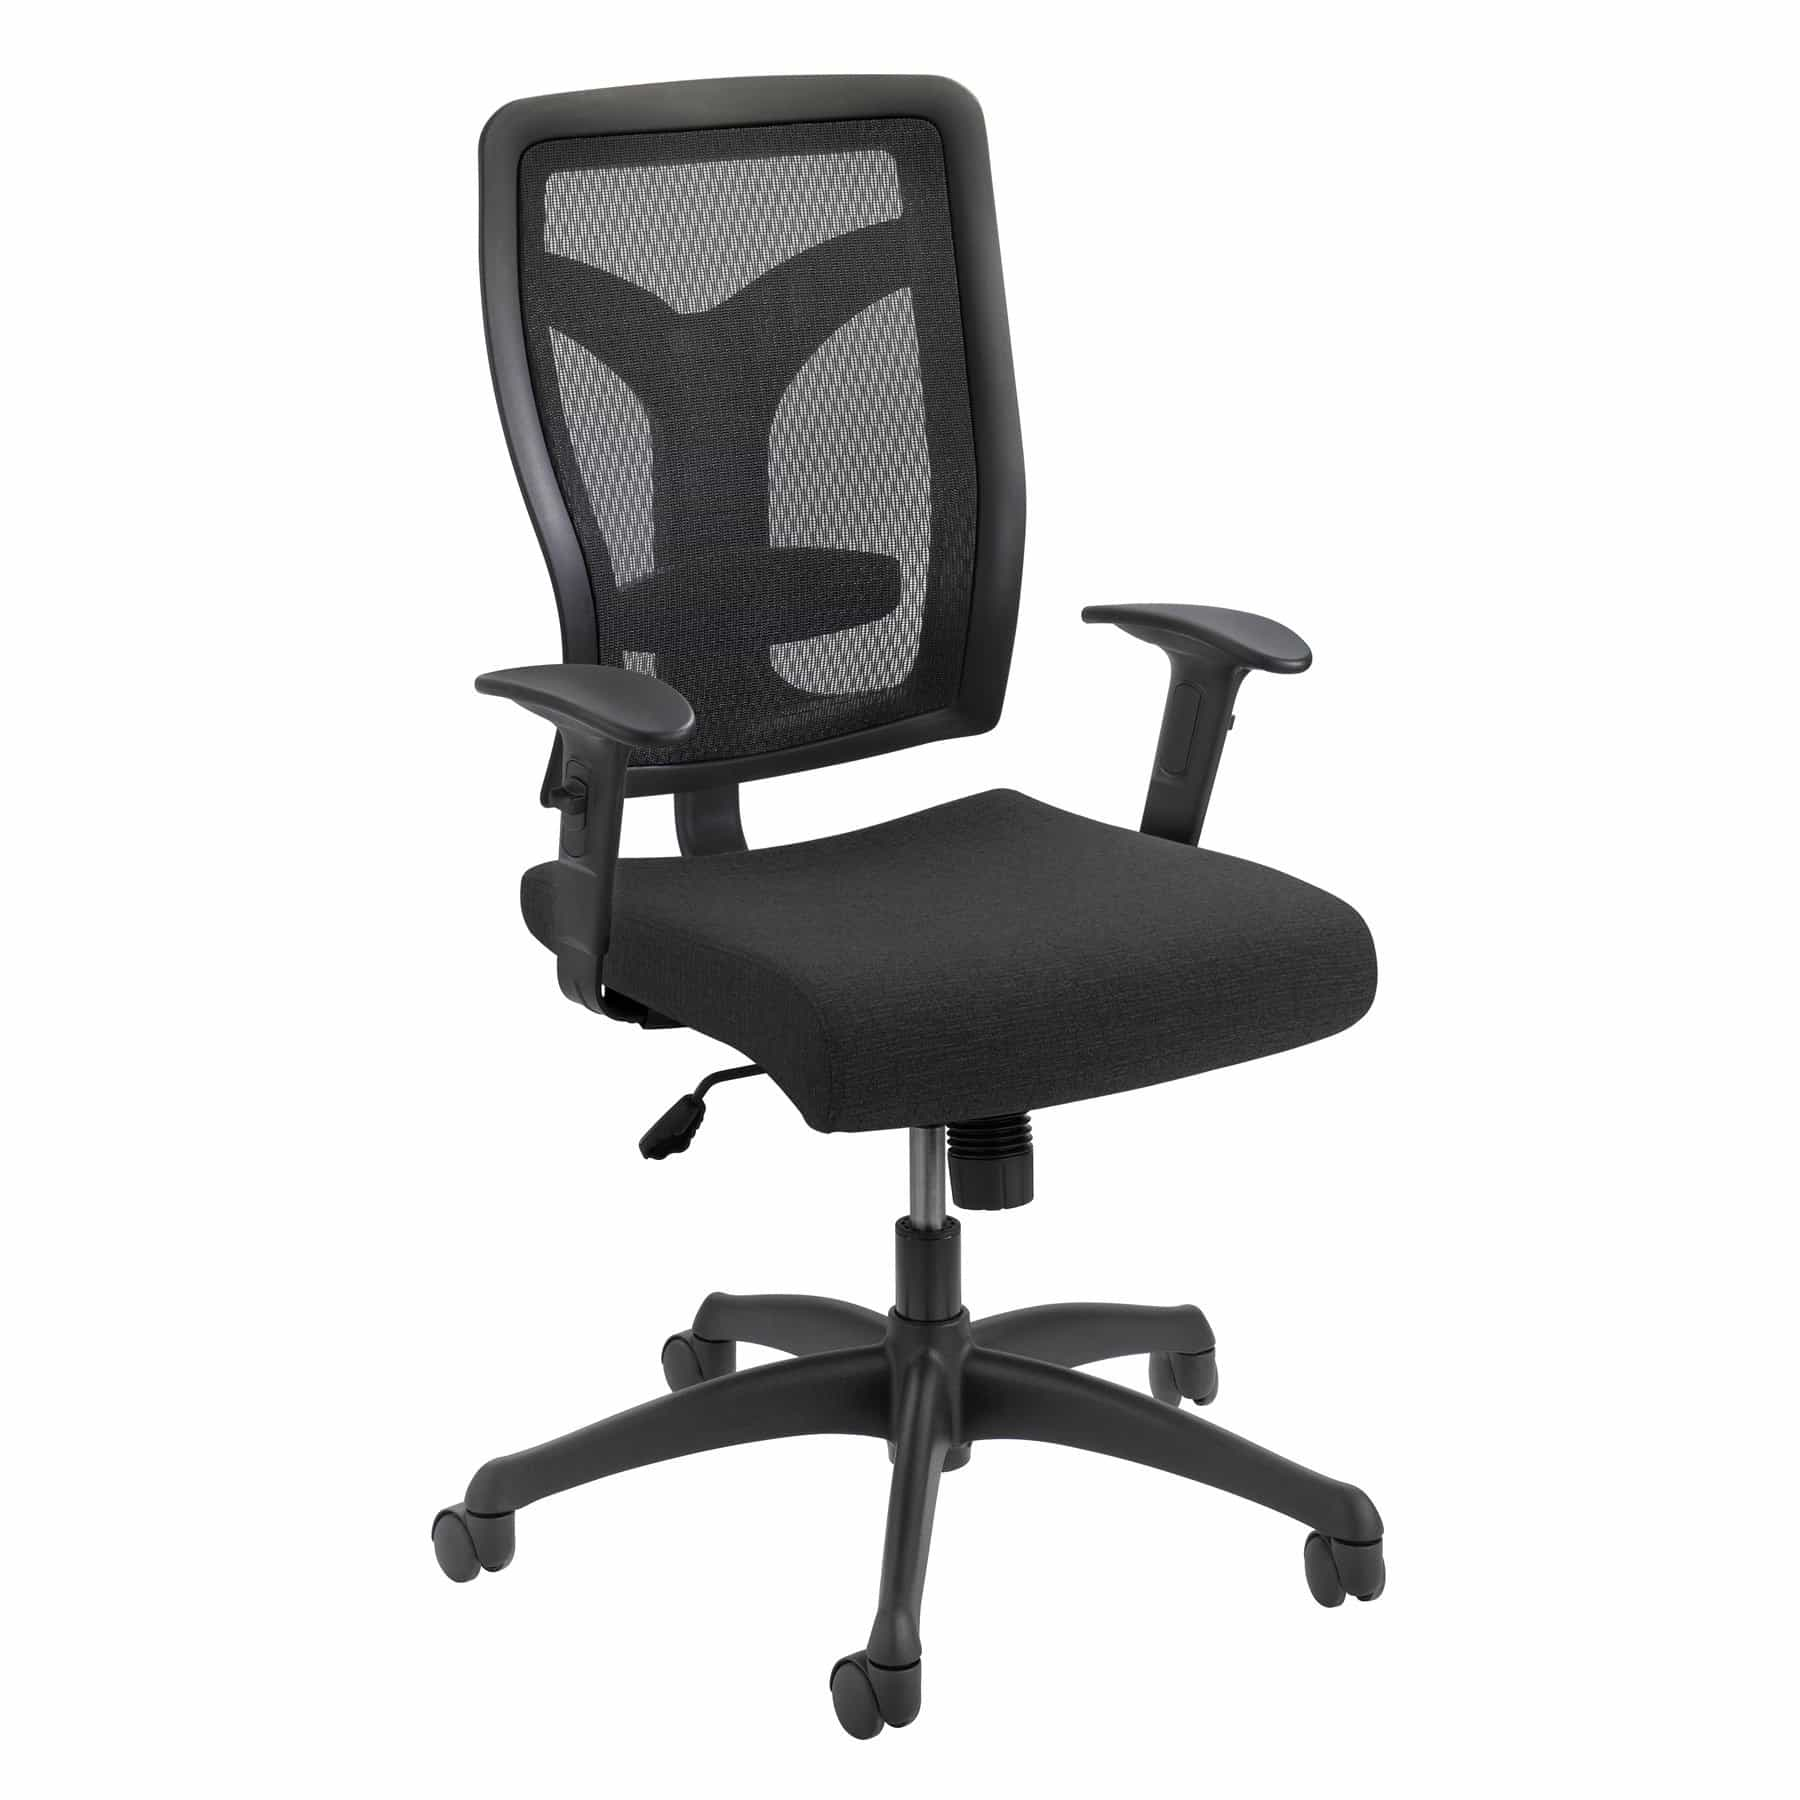 bedinhome - 5086BL Office Furniture Voice Series Mesh Back & upholstered seat Task Chair - Safco - Management/Task Seating